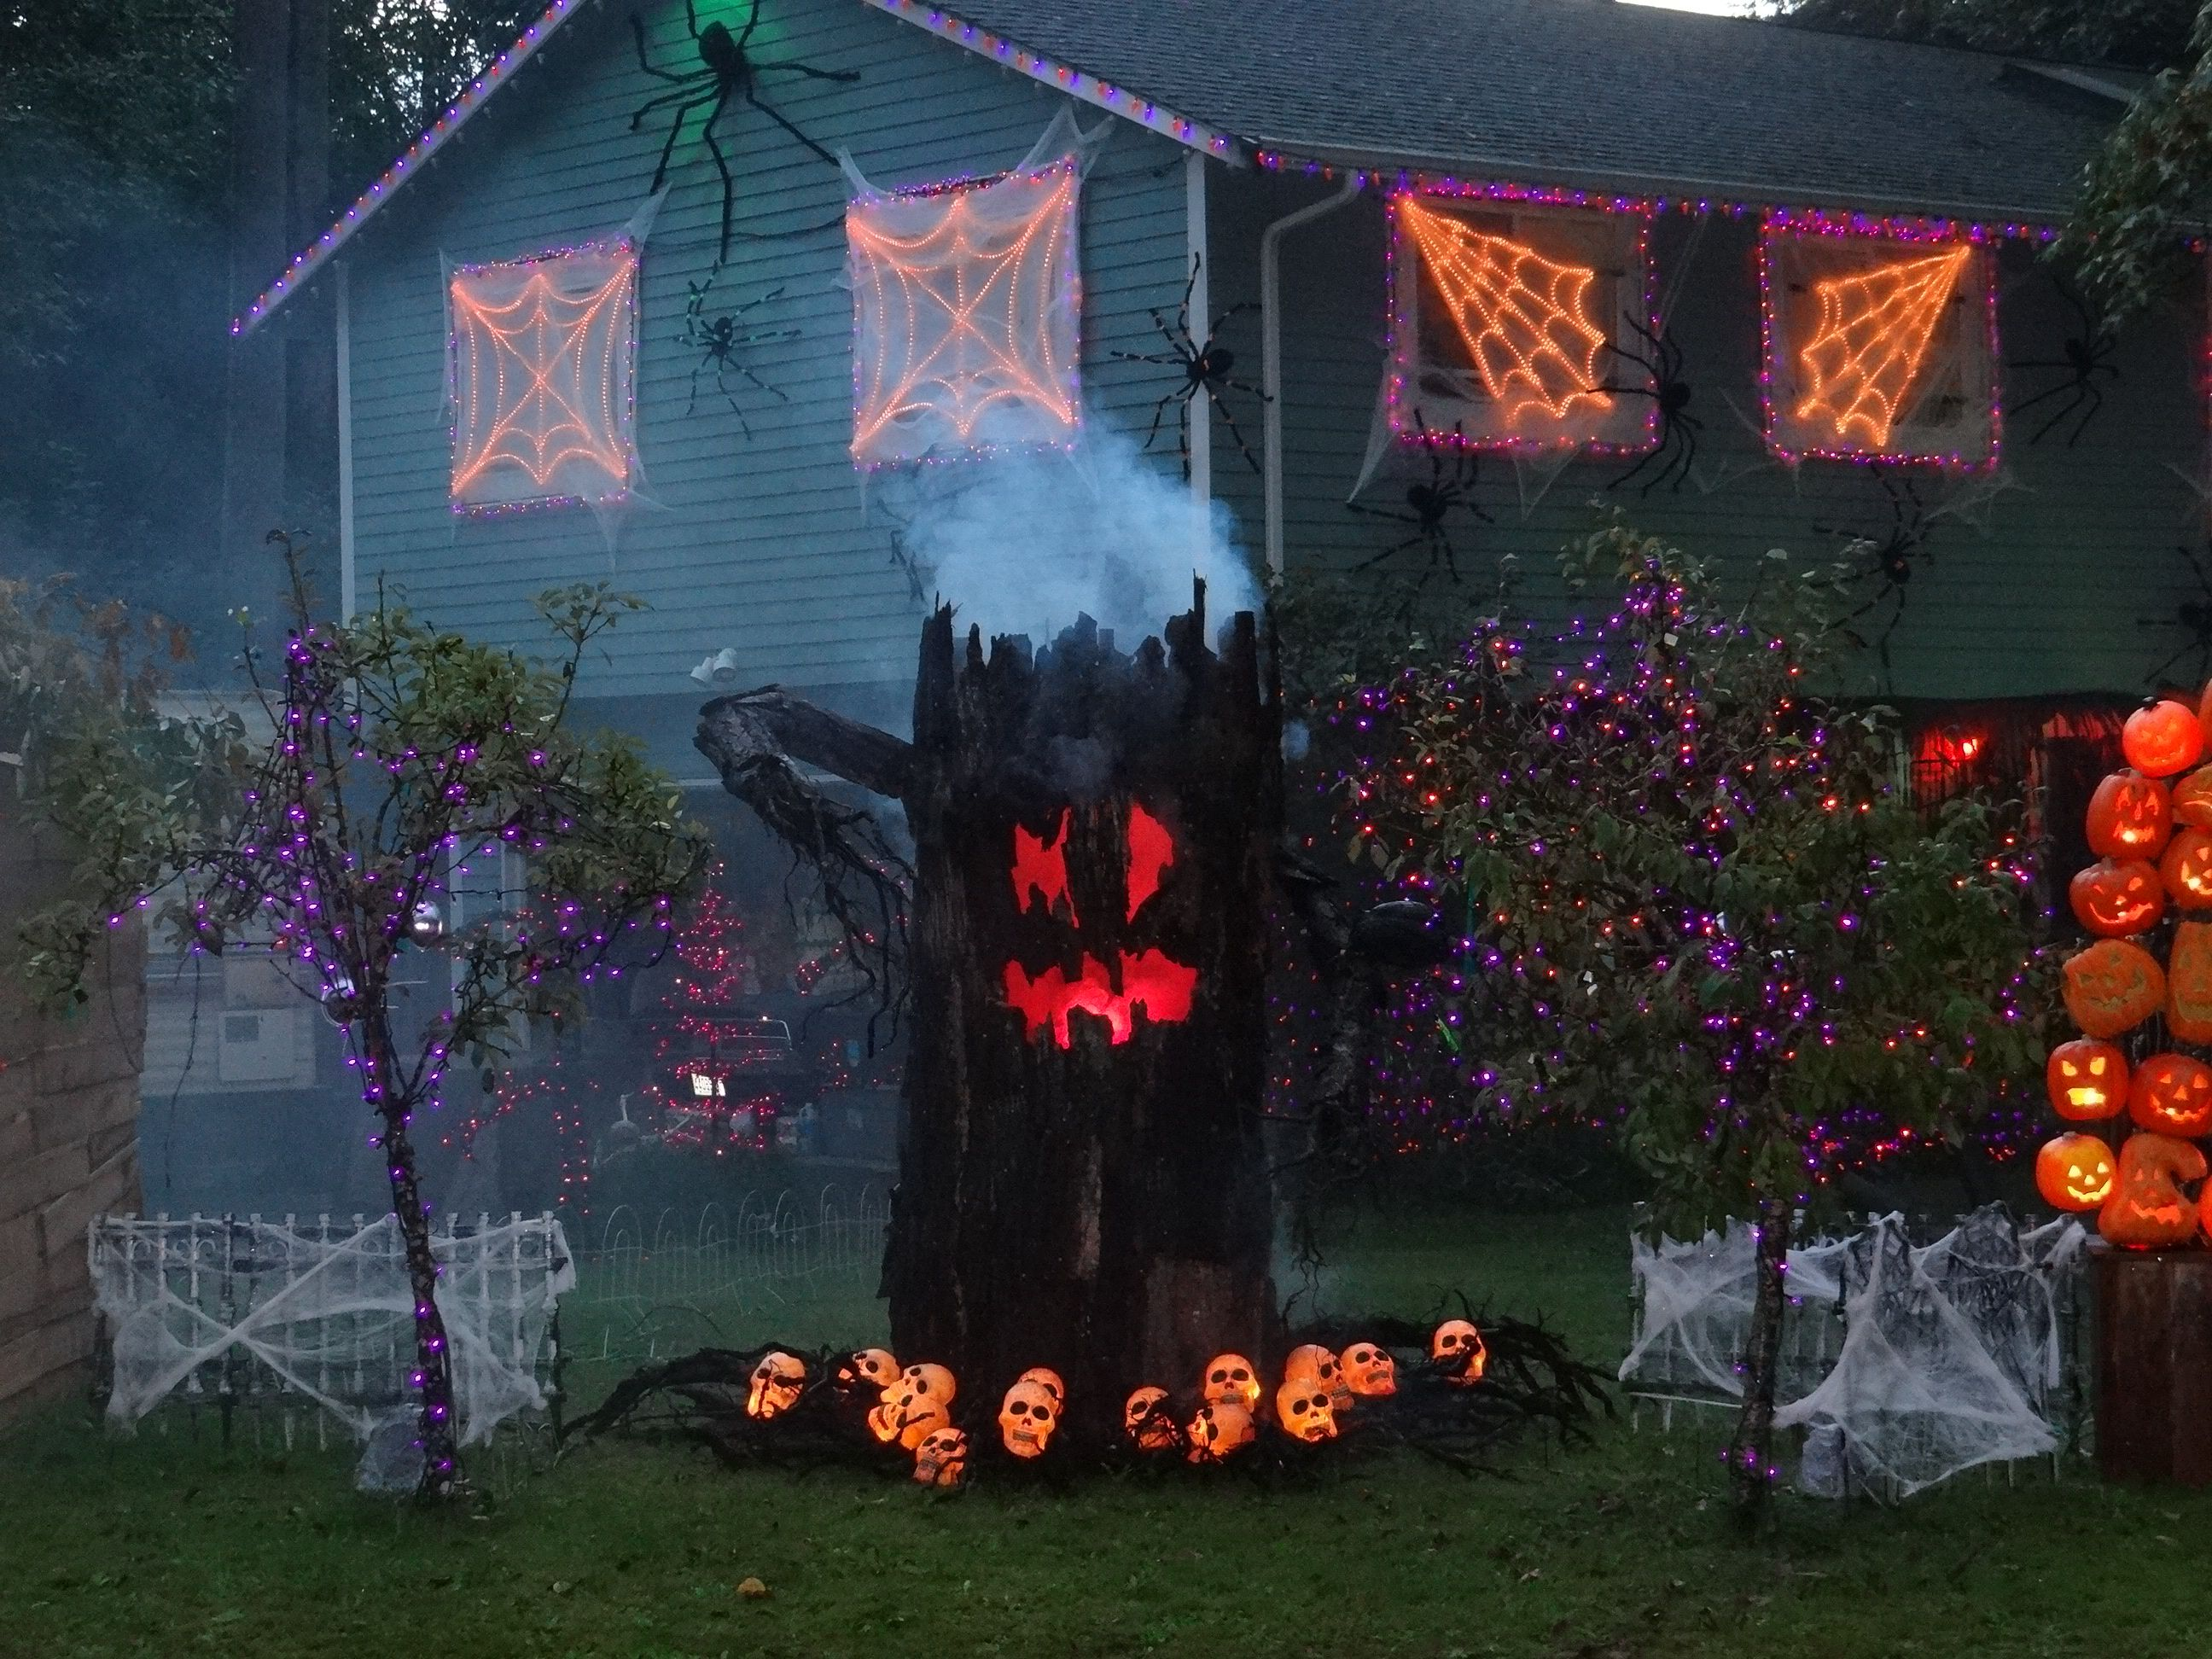 decoration cool decorating halloween outdoor with scary black tree and spyder also pumpkins for halloween outdoor design ideas wonderful halloween outdoor - Unusual Halloween Decorations